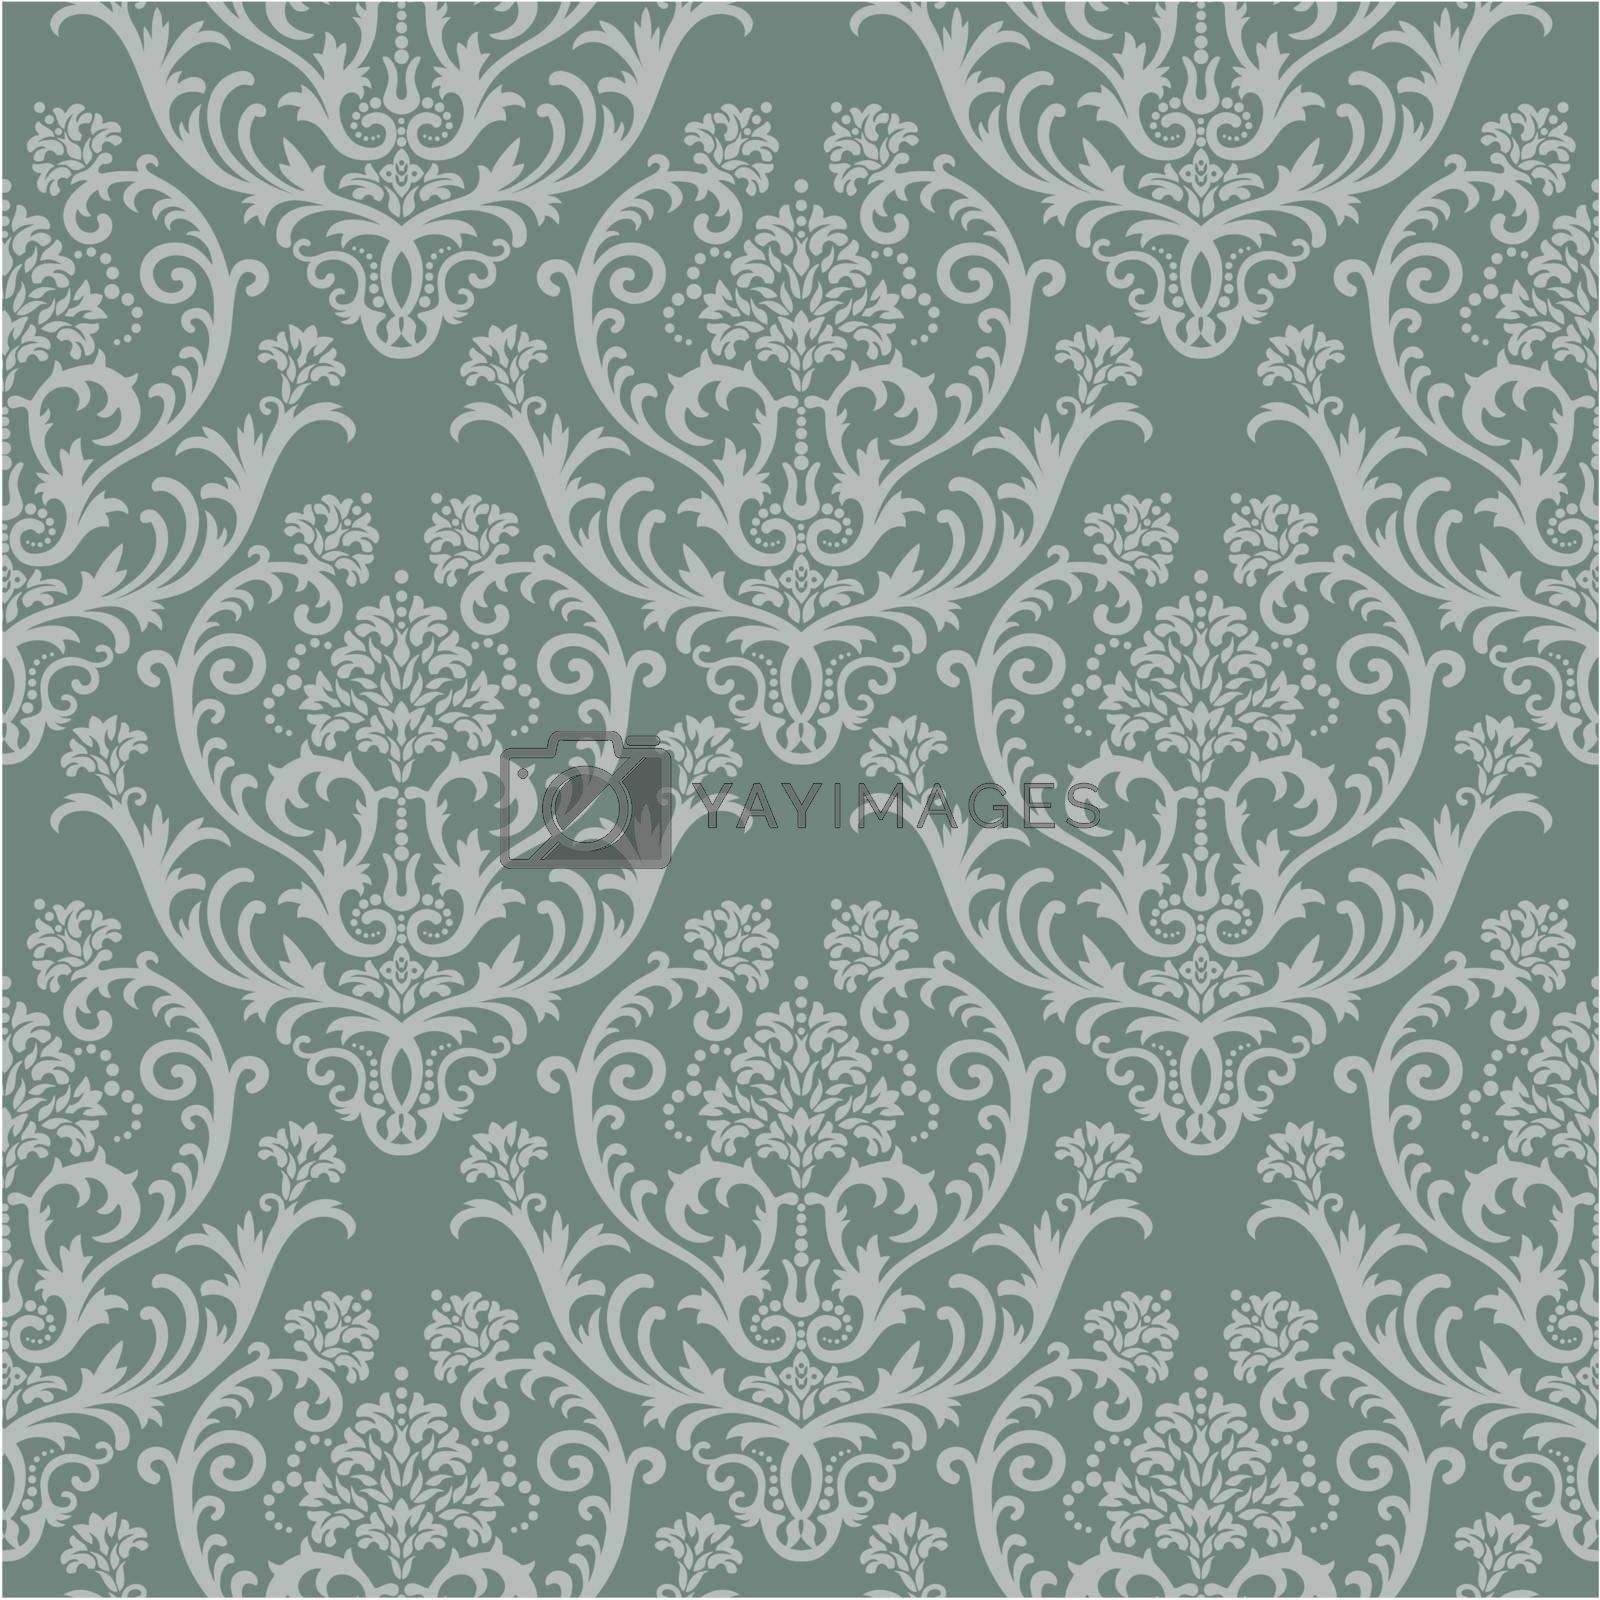 Seamless green floral damask wallpaper. This image is a vector illustration. Please visit my portfolio for more similar illustrations.